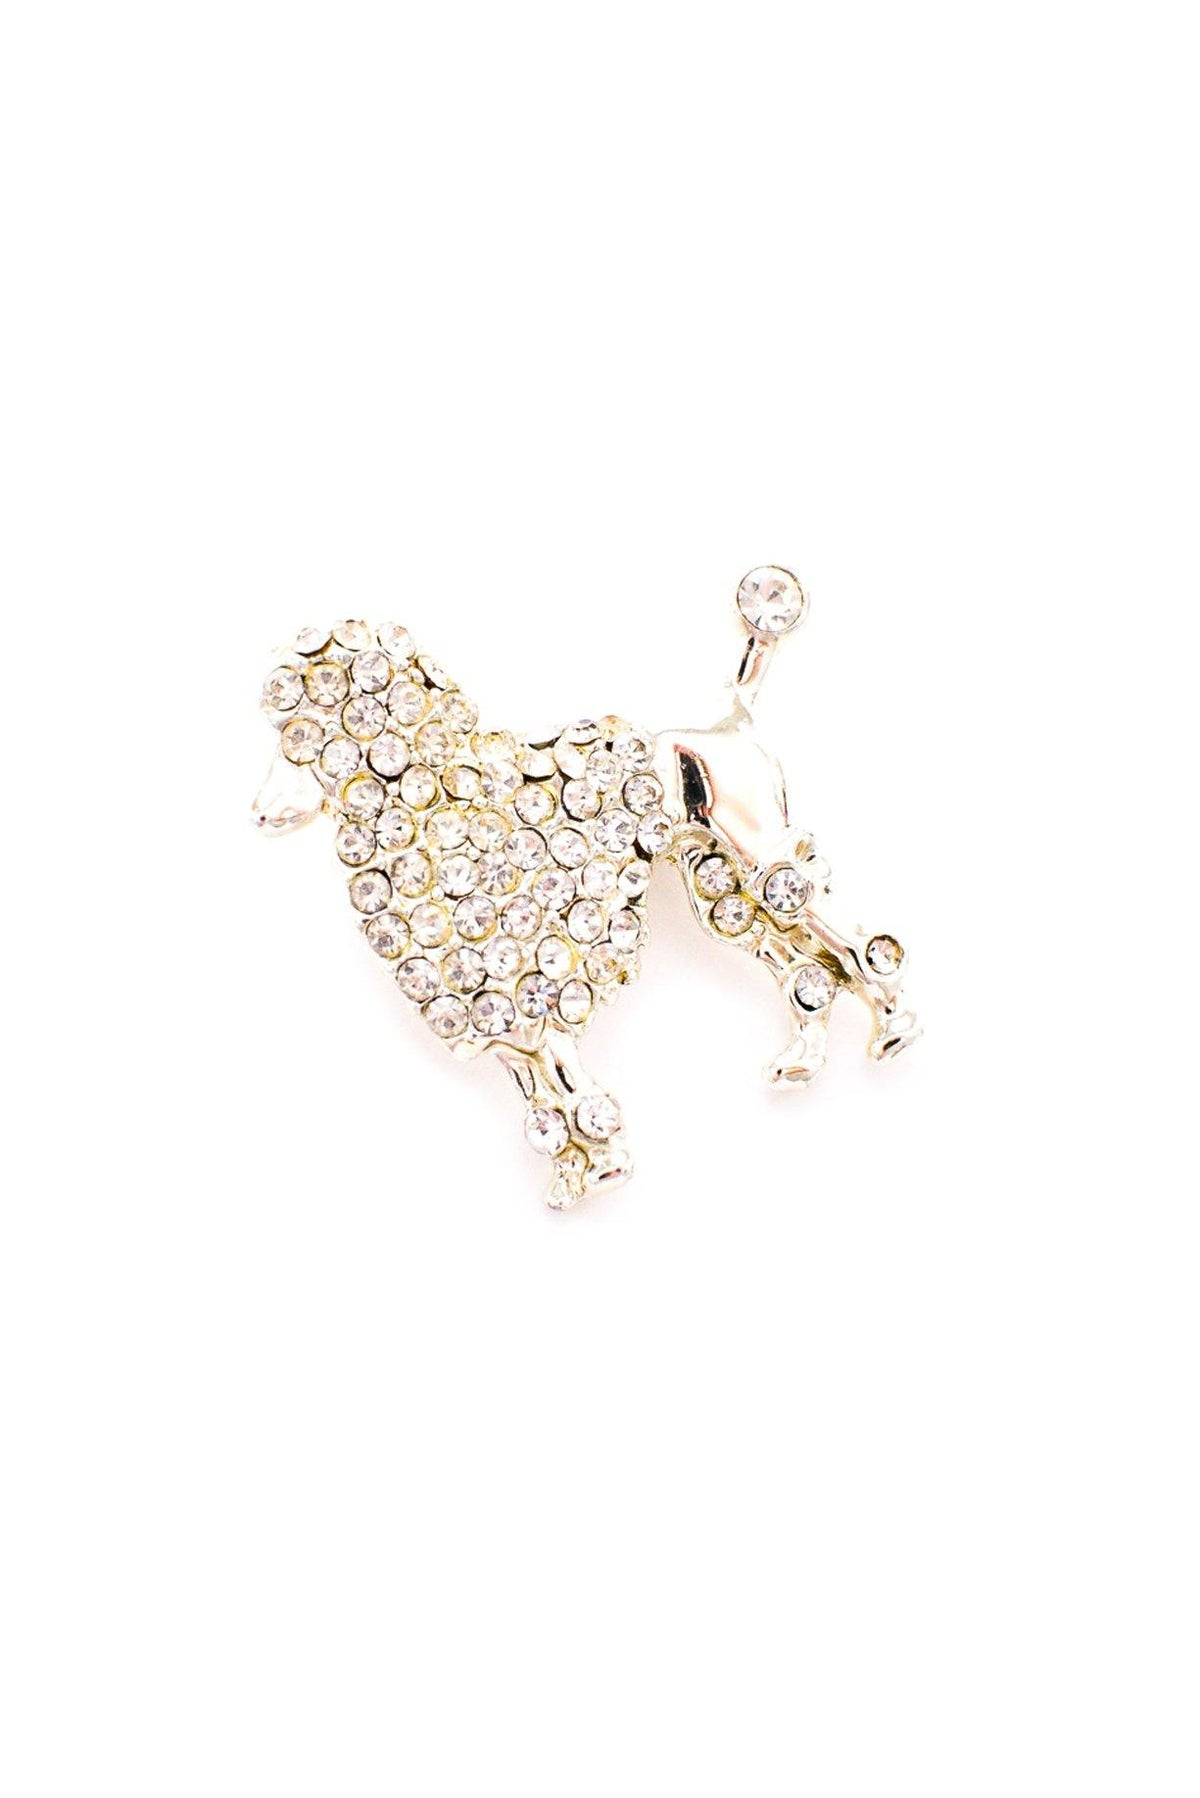 Vintage rhinestone mini poodle pin from Sweet & Spark.